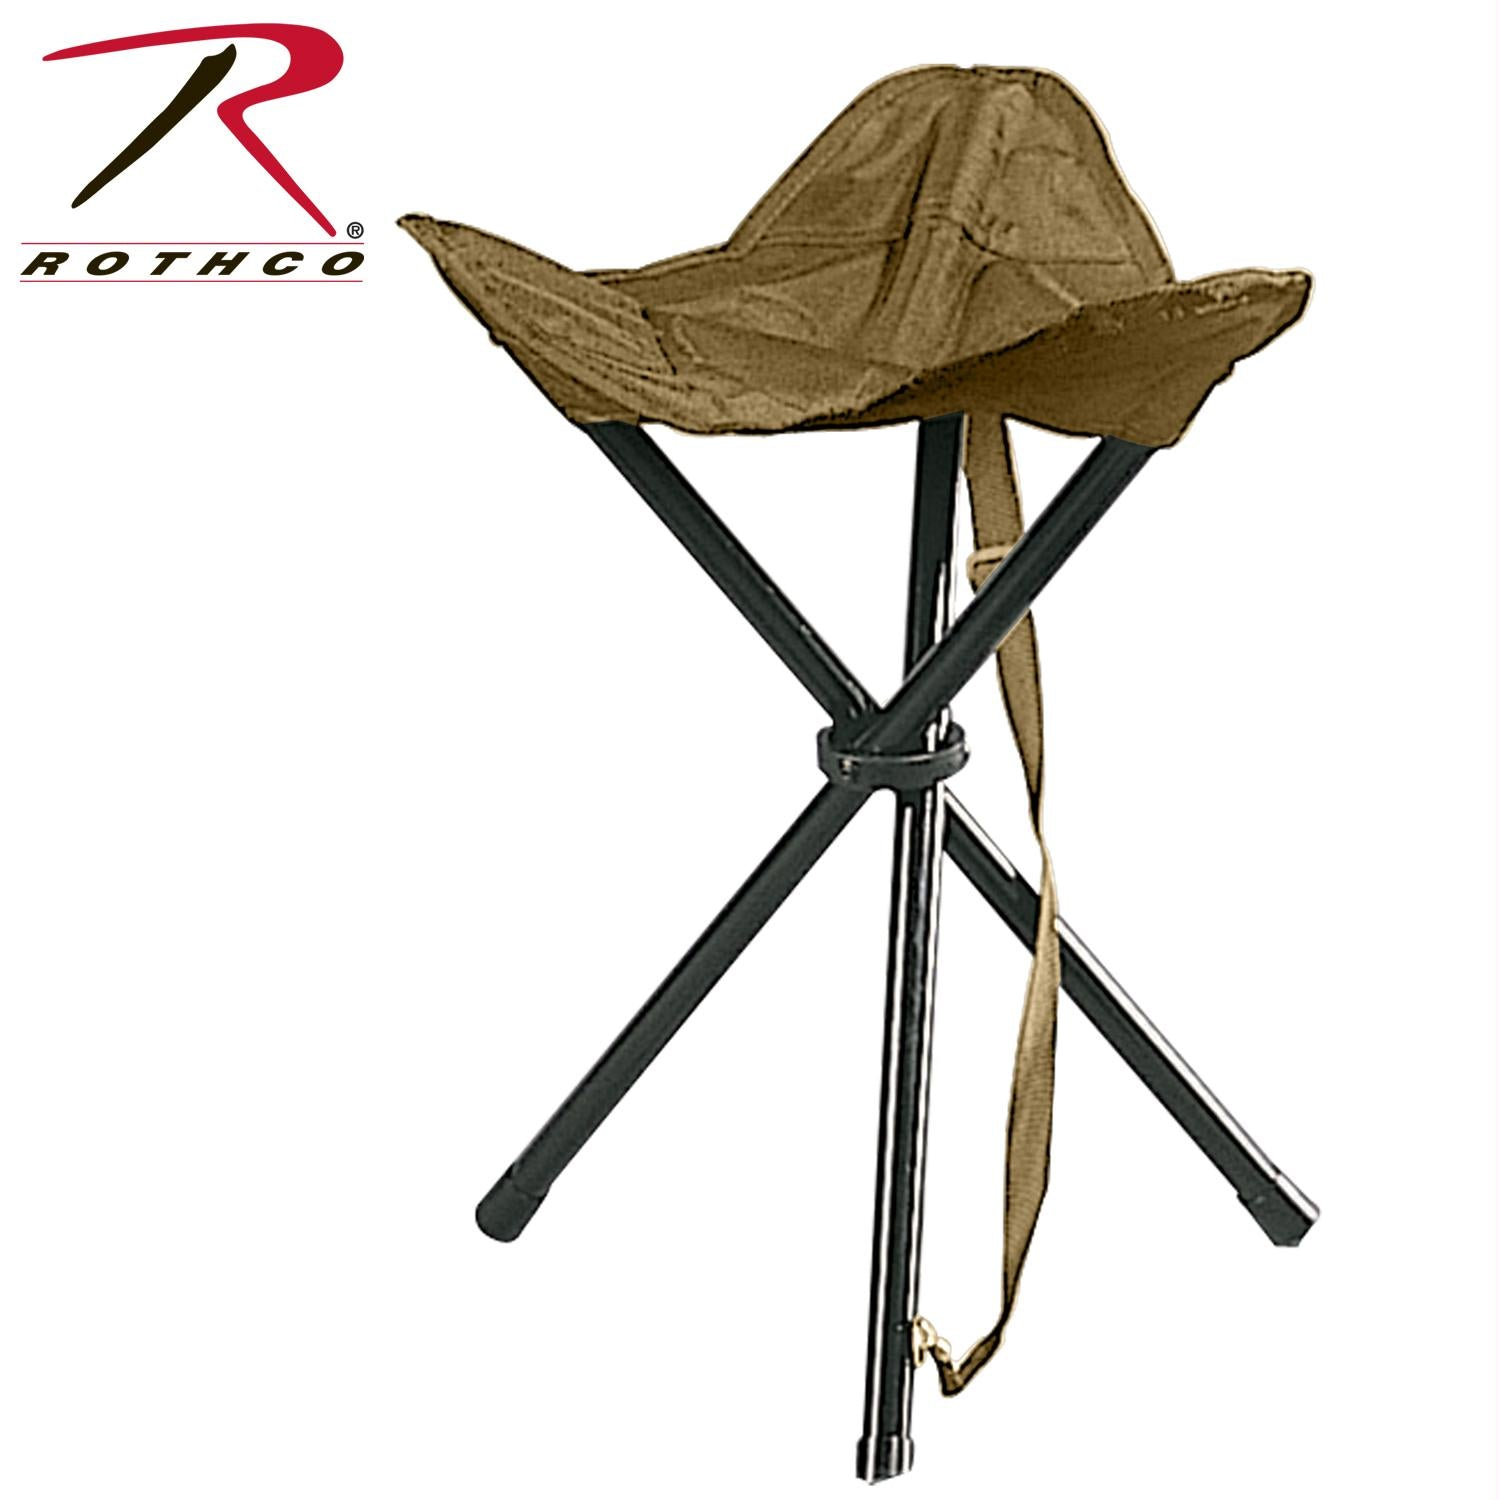 Rothco Collapsible Stool With Carry Strap - Coyote Brown